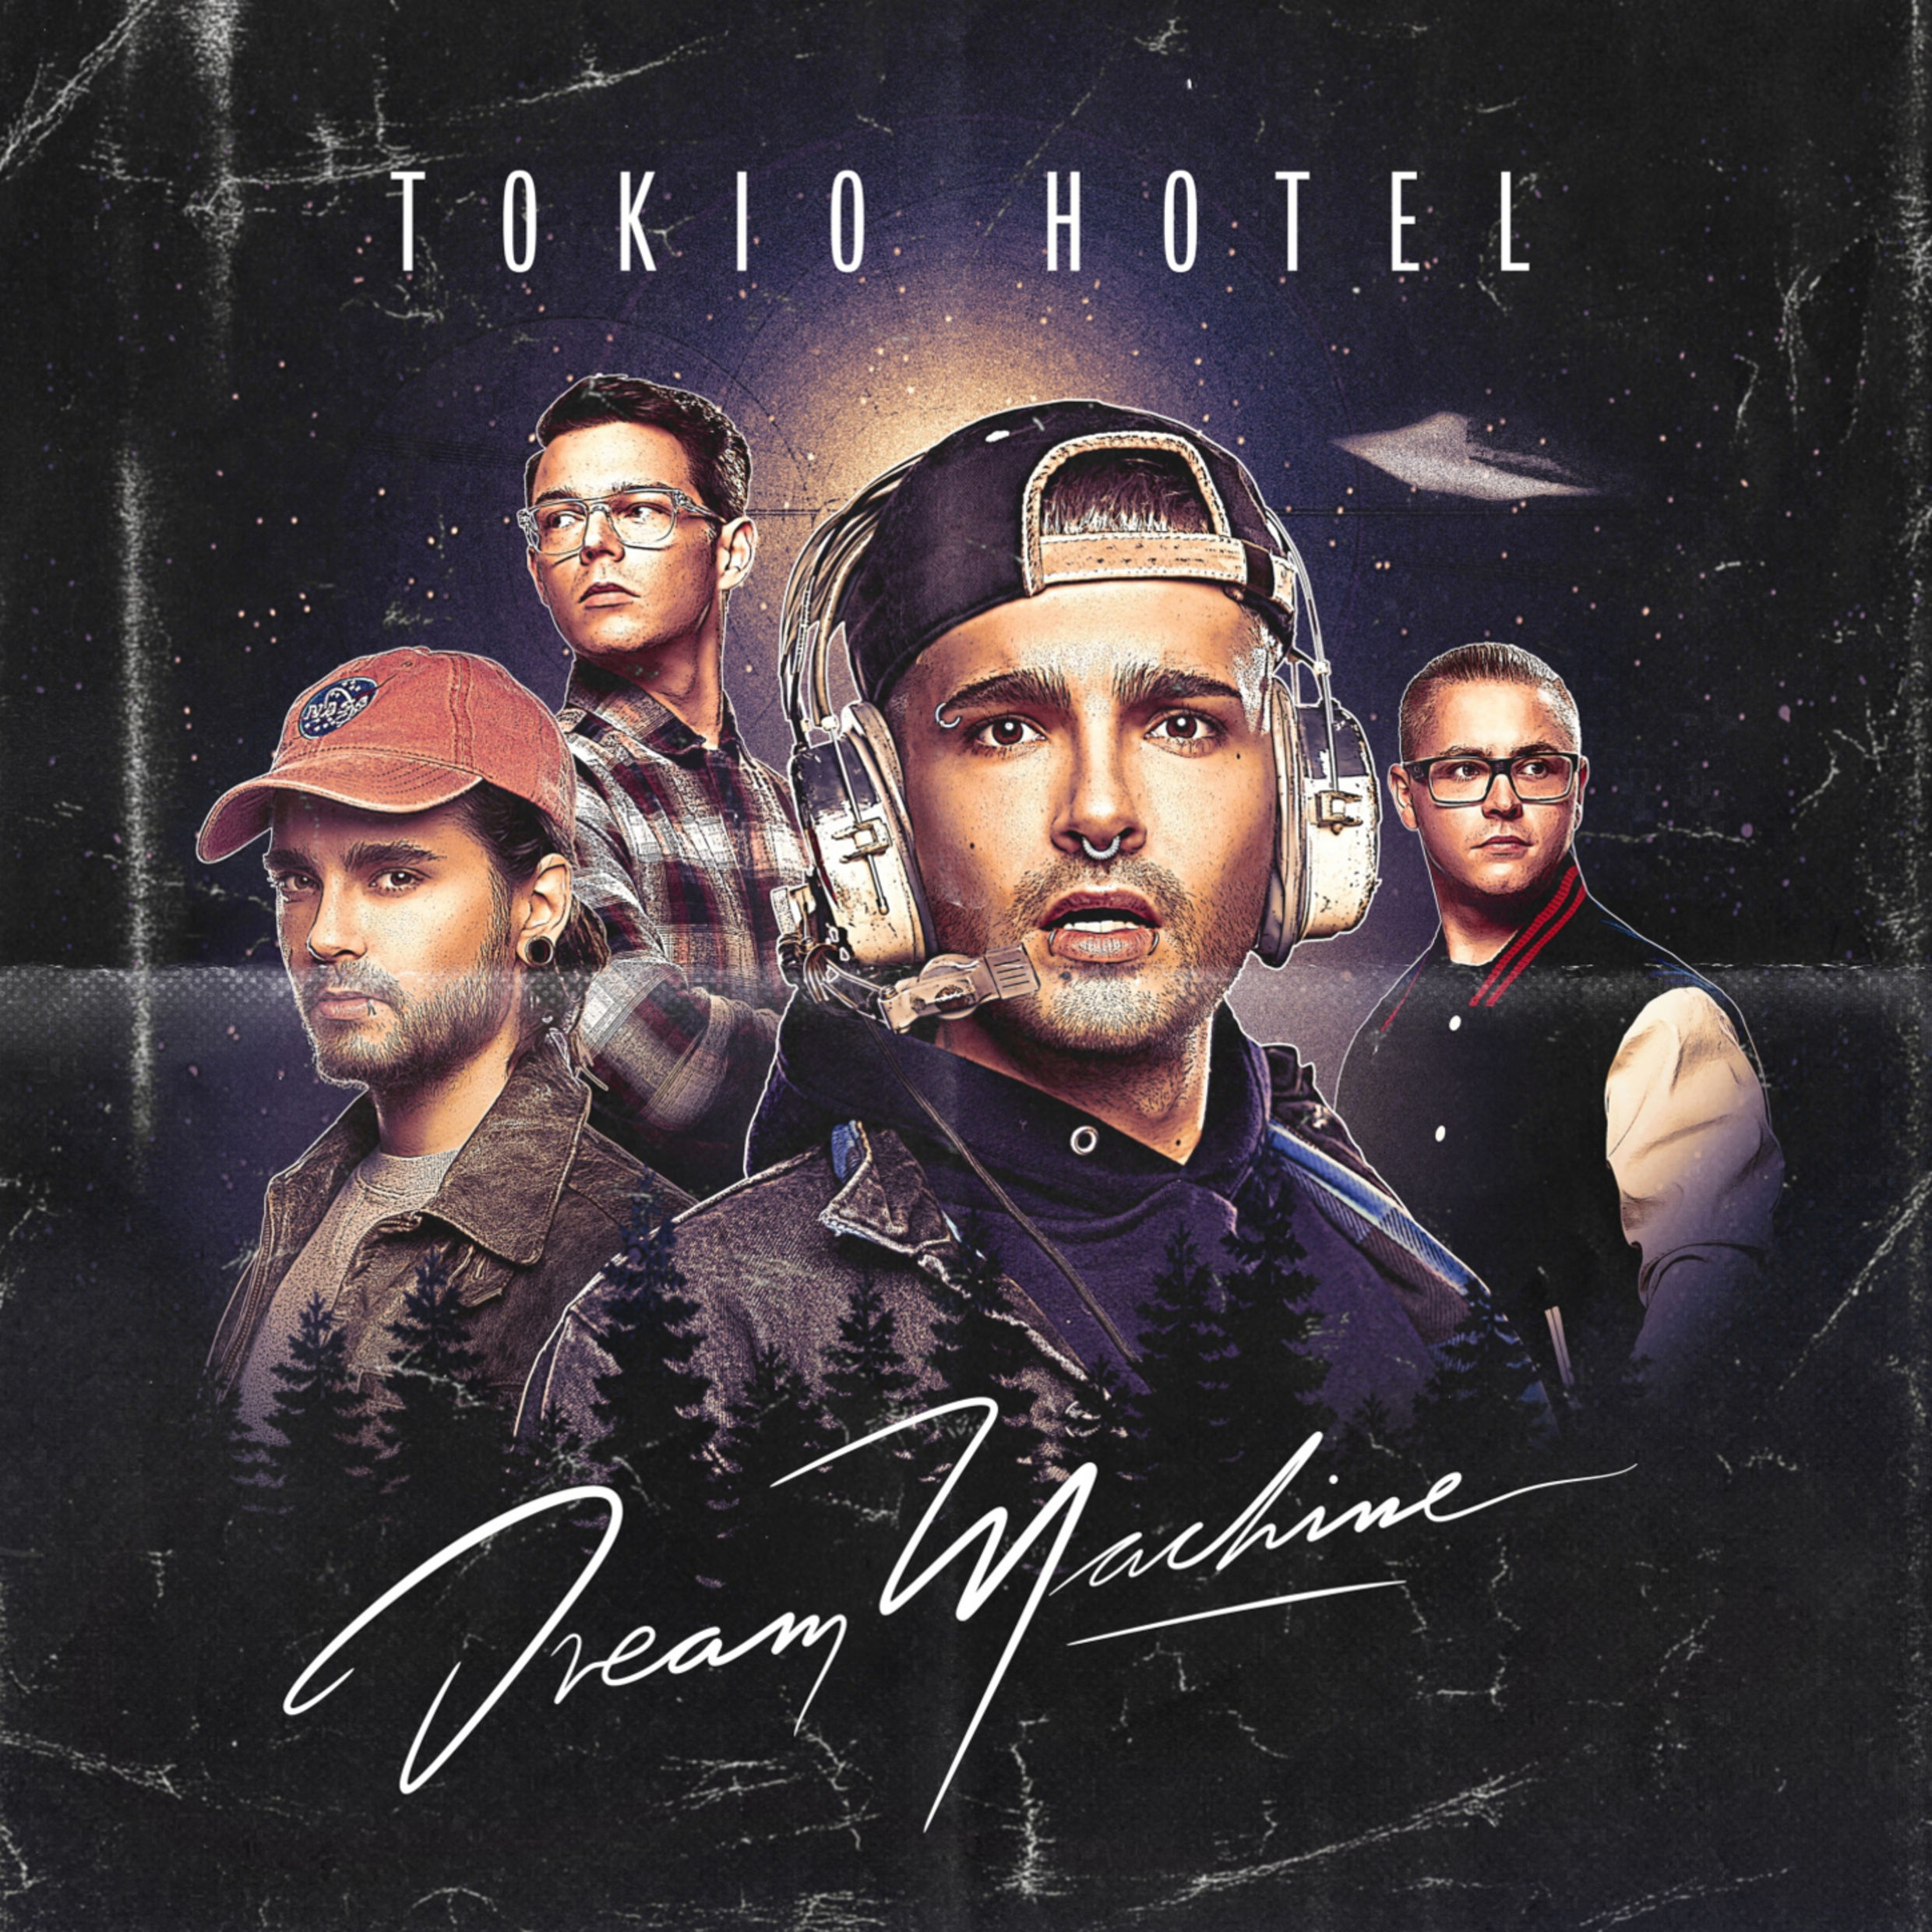 tokio-hotel-dream-machine-2017-2480x2480